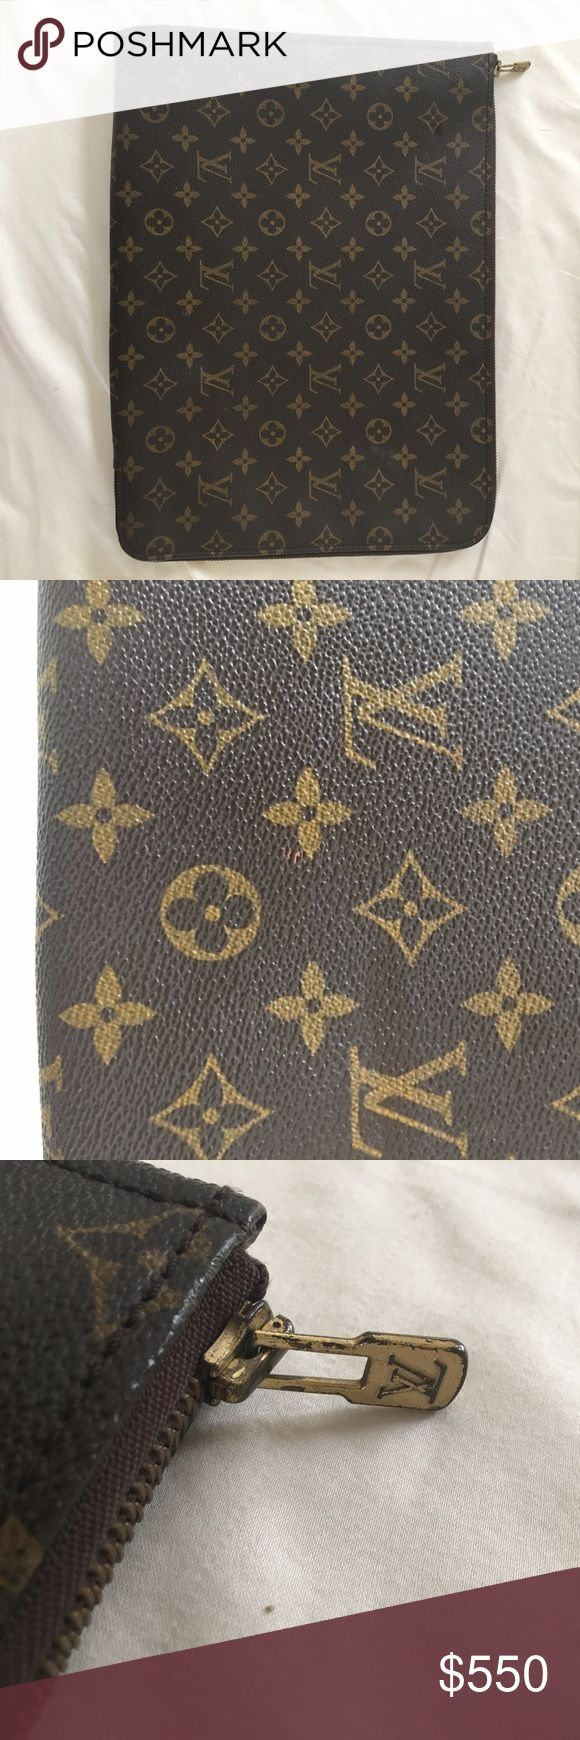 "Vintage Monogram Zip Around File Folder • Leather AUTHENTIC Vintage Louis Vuitton Monogram Zip around Document folder • File Holder Bag • would fit for a laptop bag • RARE • Leather • W 15"" x H 11"" • Please ask all questions Louis Vuitton Bags Travel Bags"